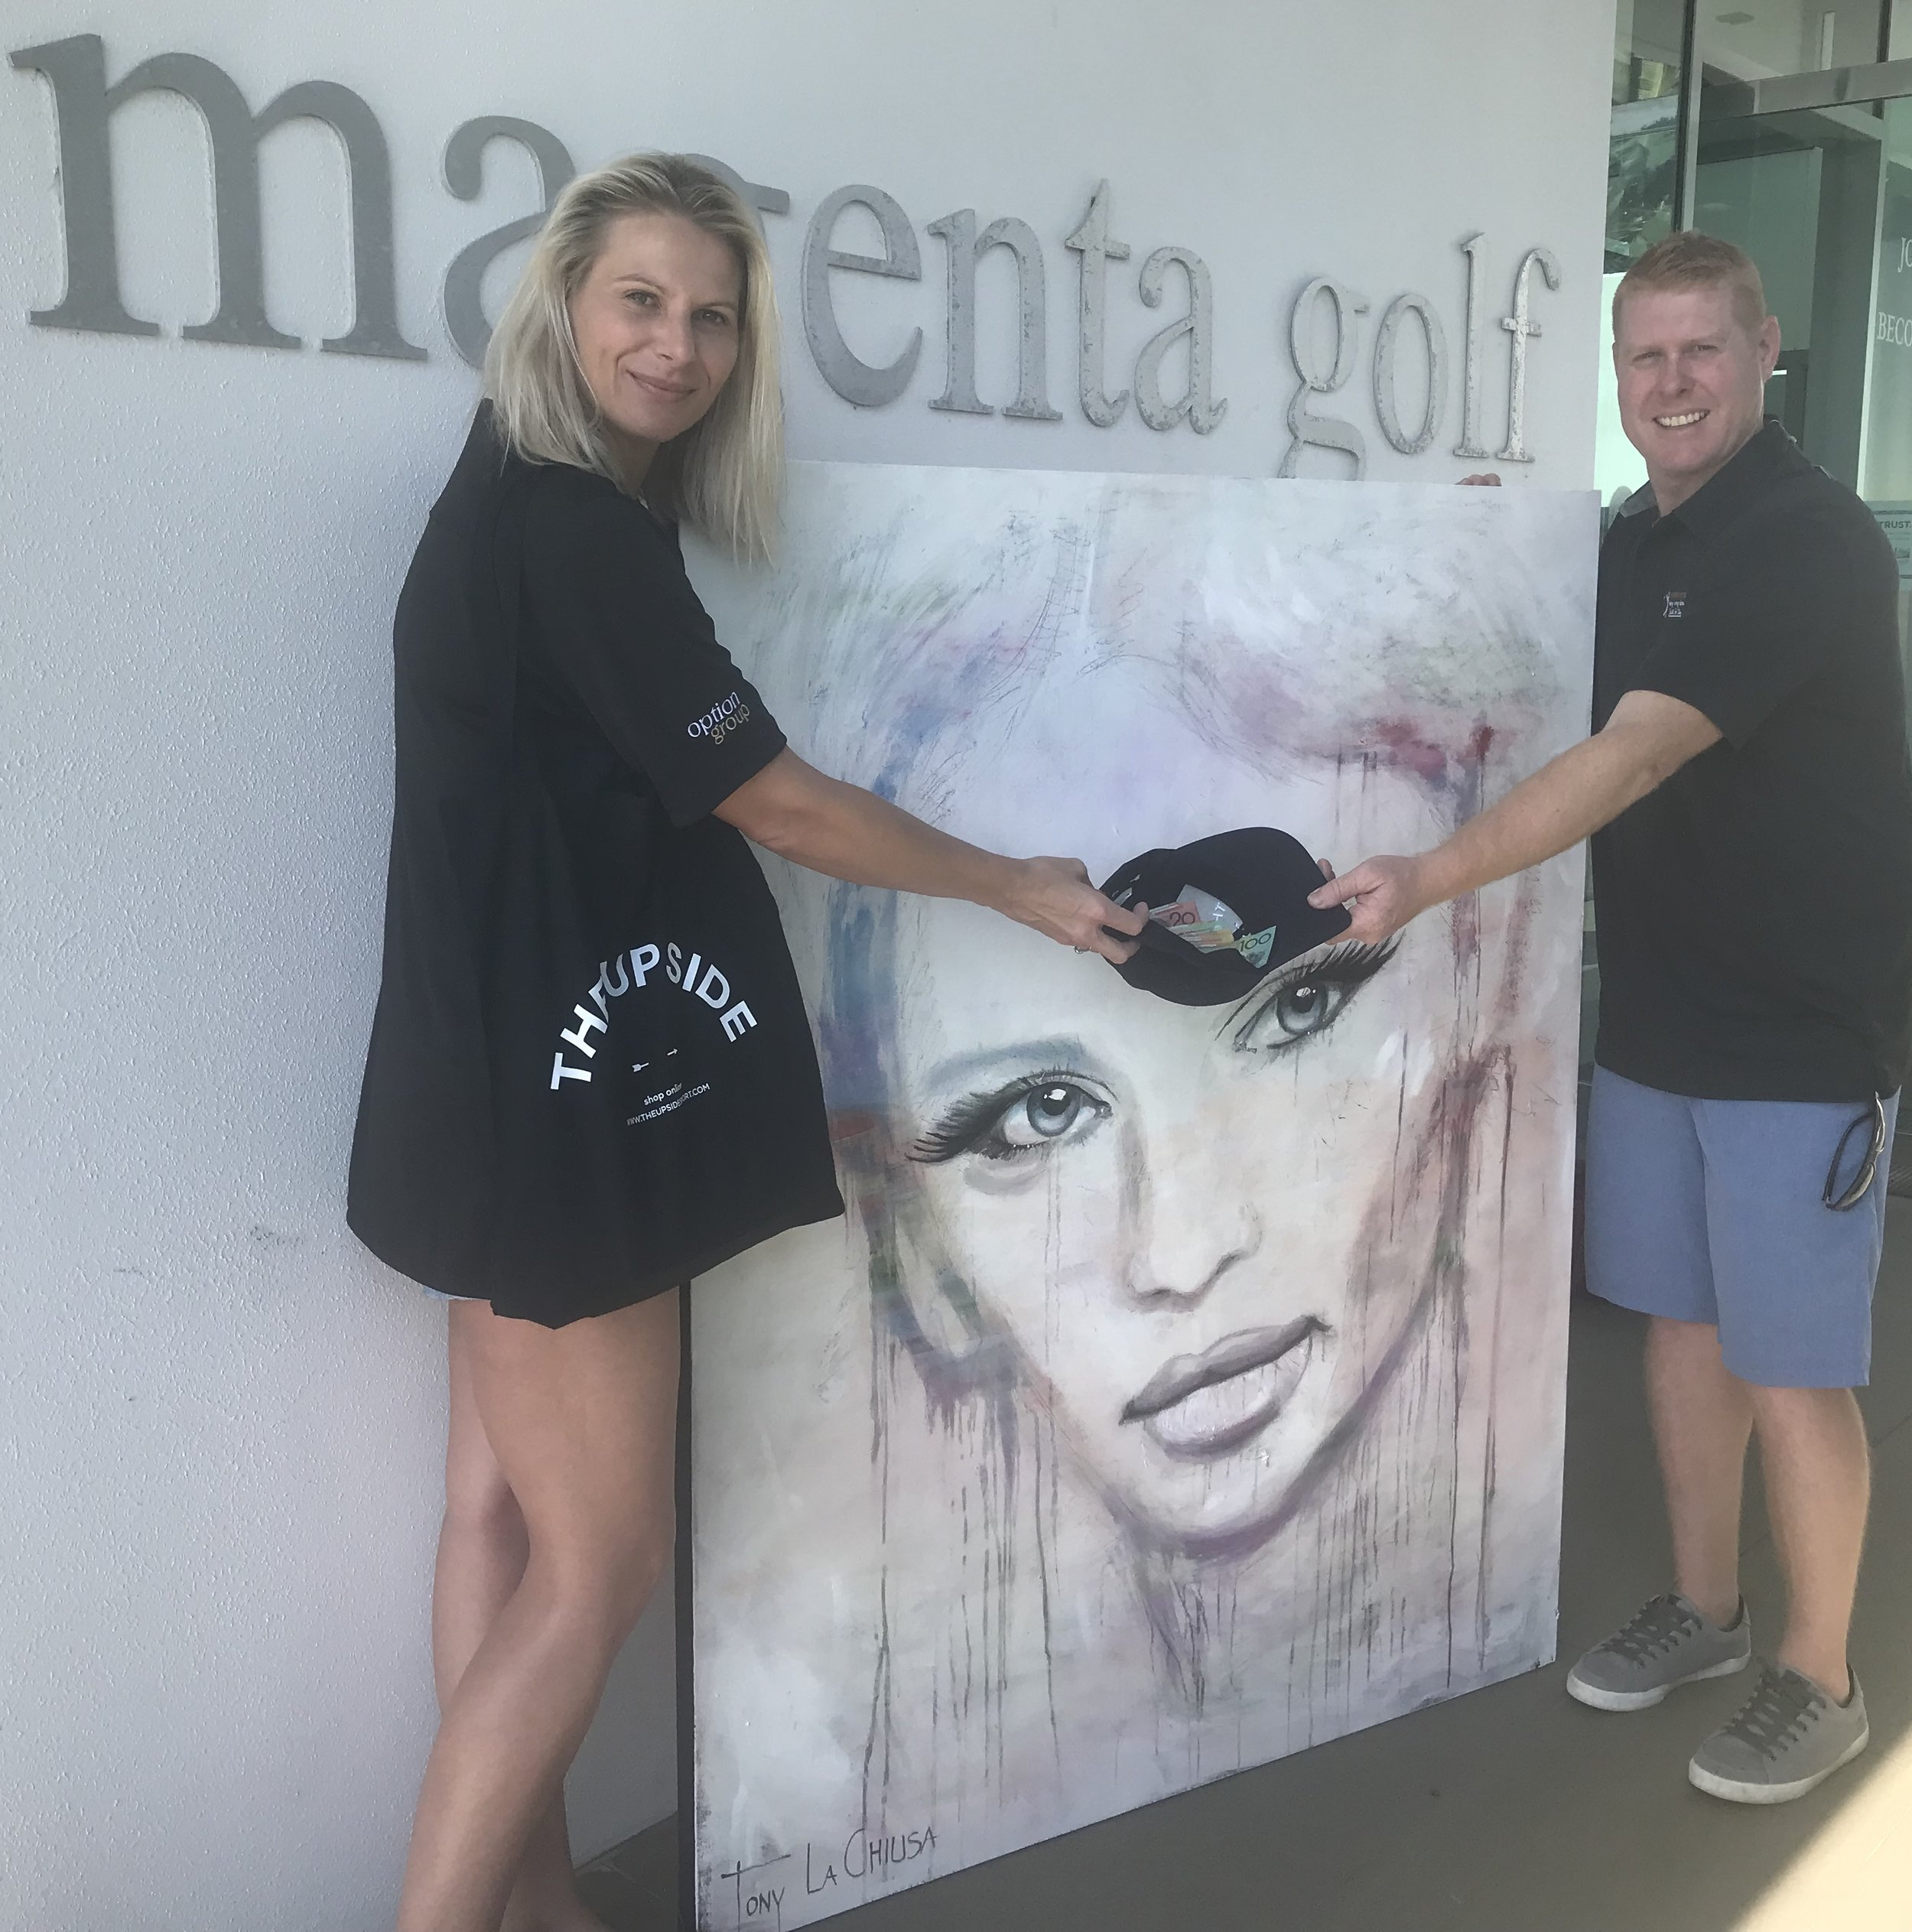 """Tony La Chiusa large wall art donation """" Desire"""" for the Charity Golf Day at Magenta Shores Golf and Country Club -hole in one Competition  source - The Northern Daily Leader"""